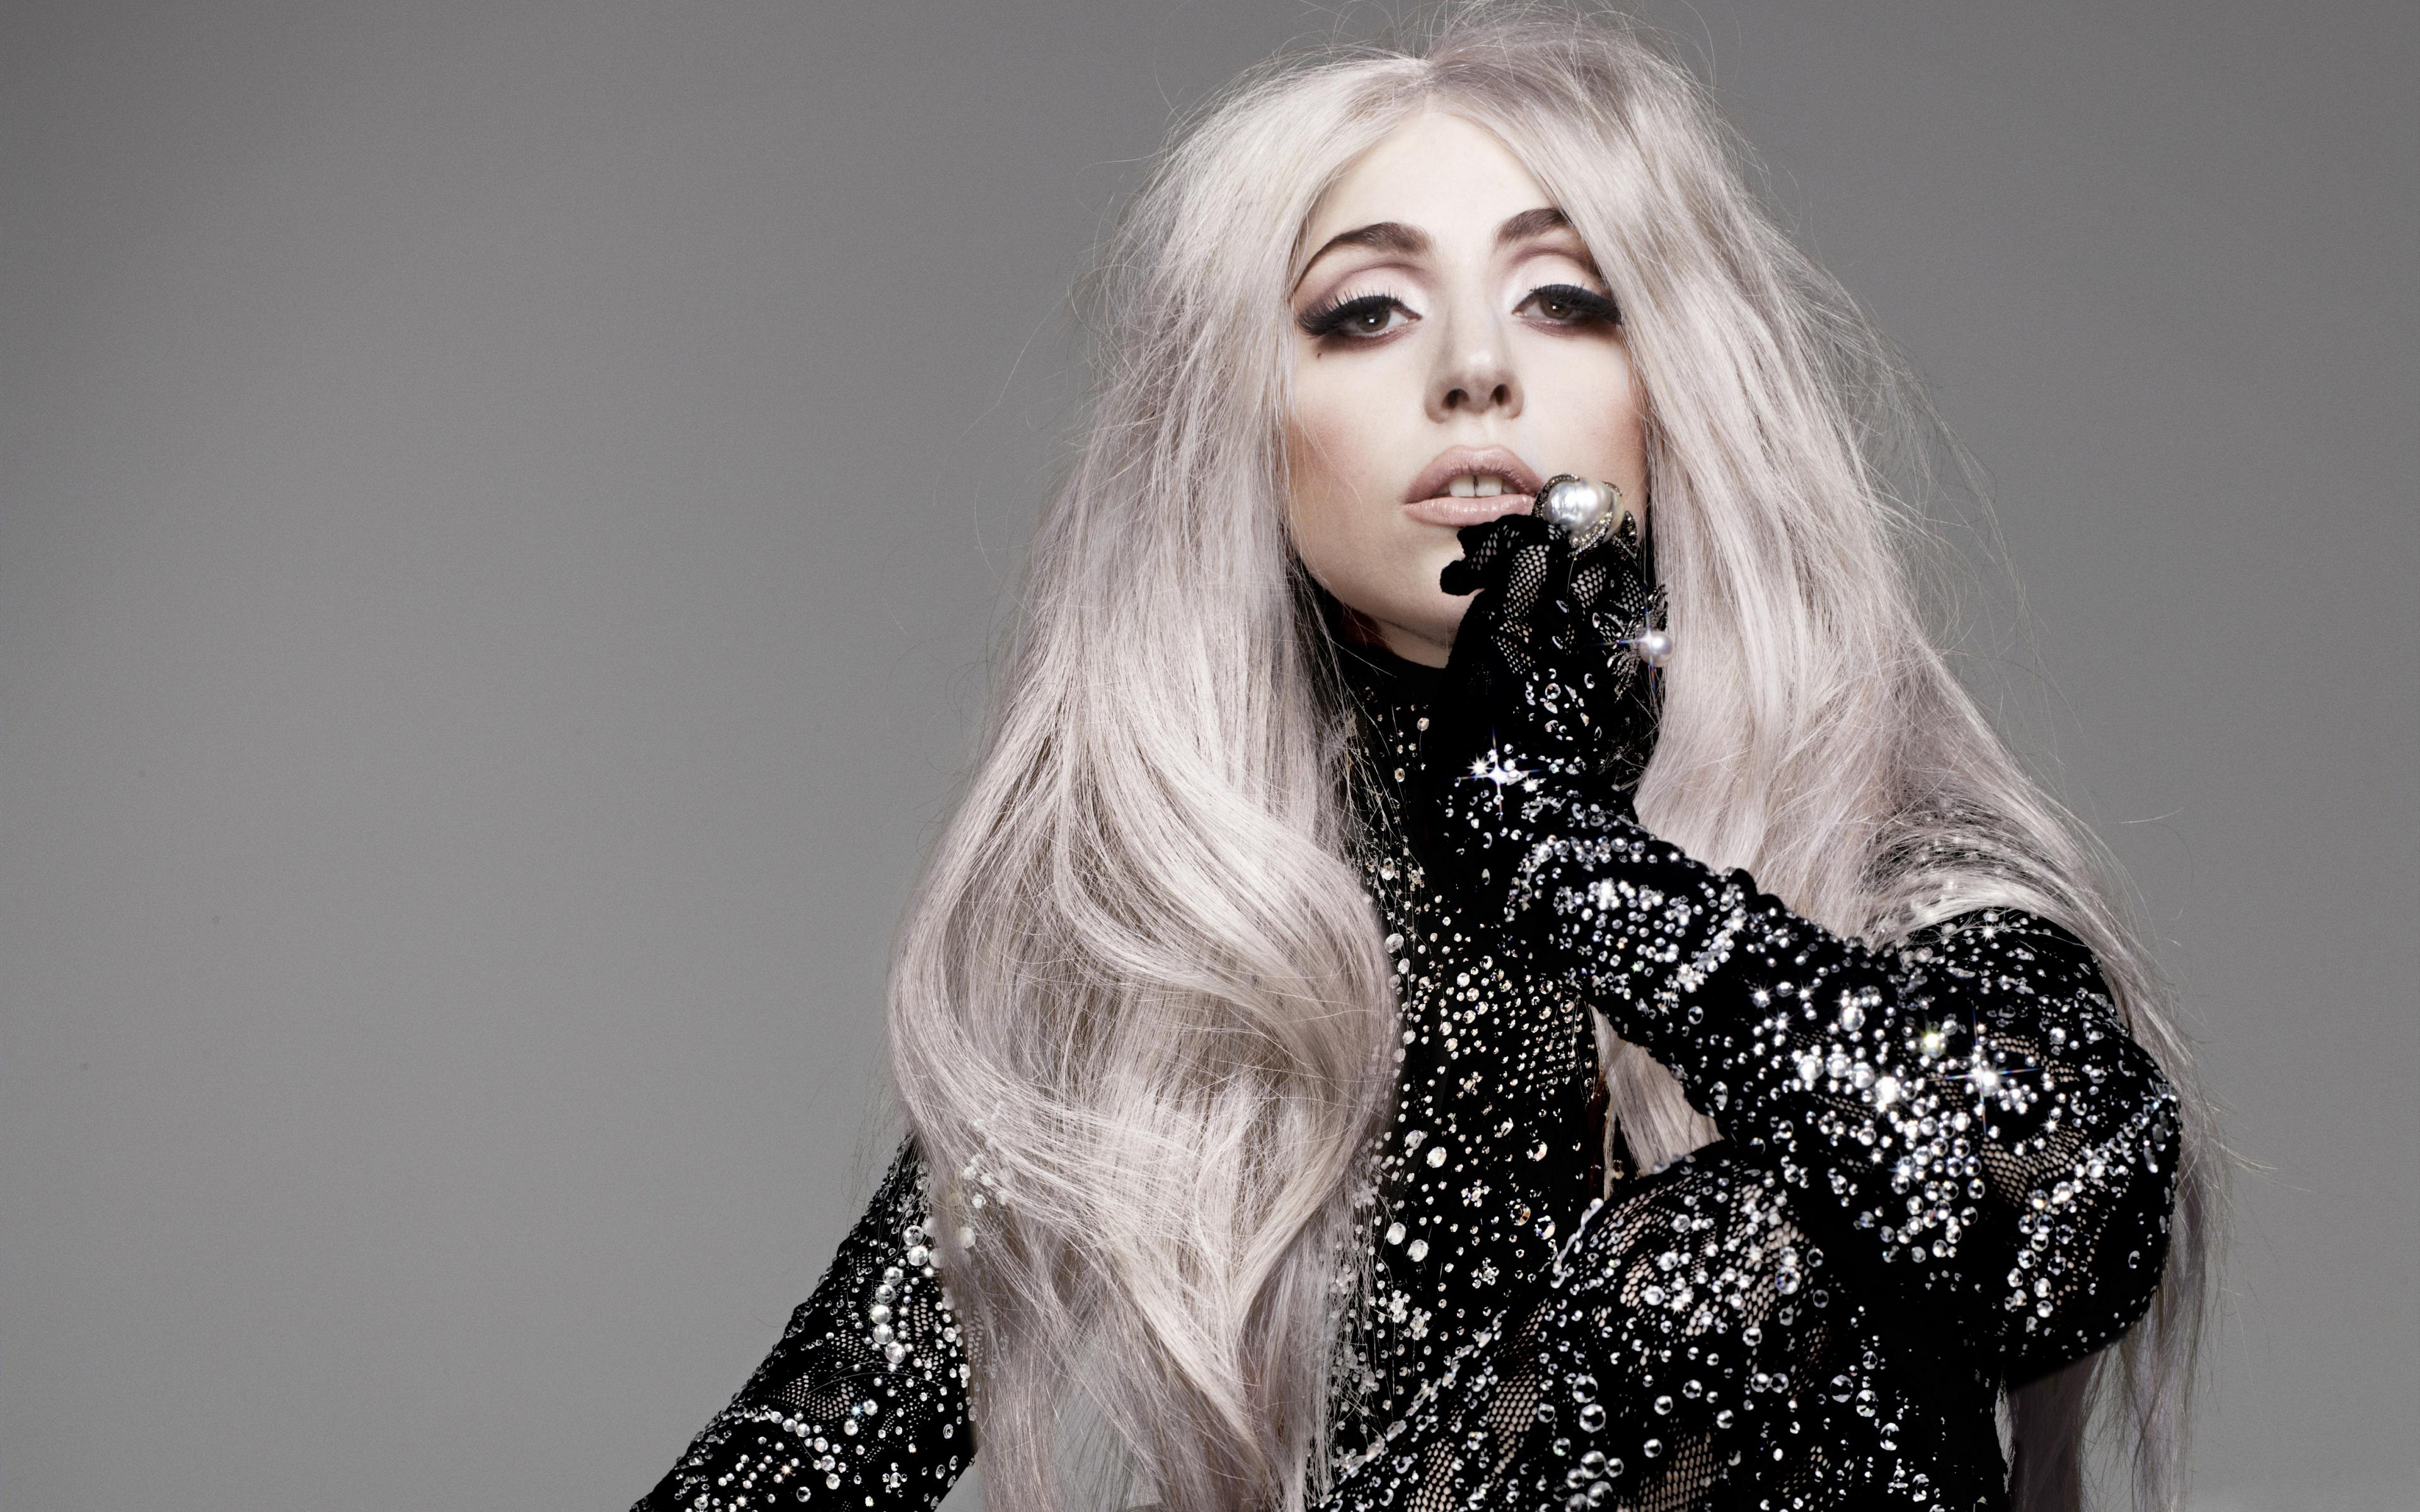 lady gaga wallpapers high resolution and quality download